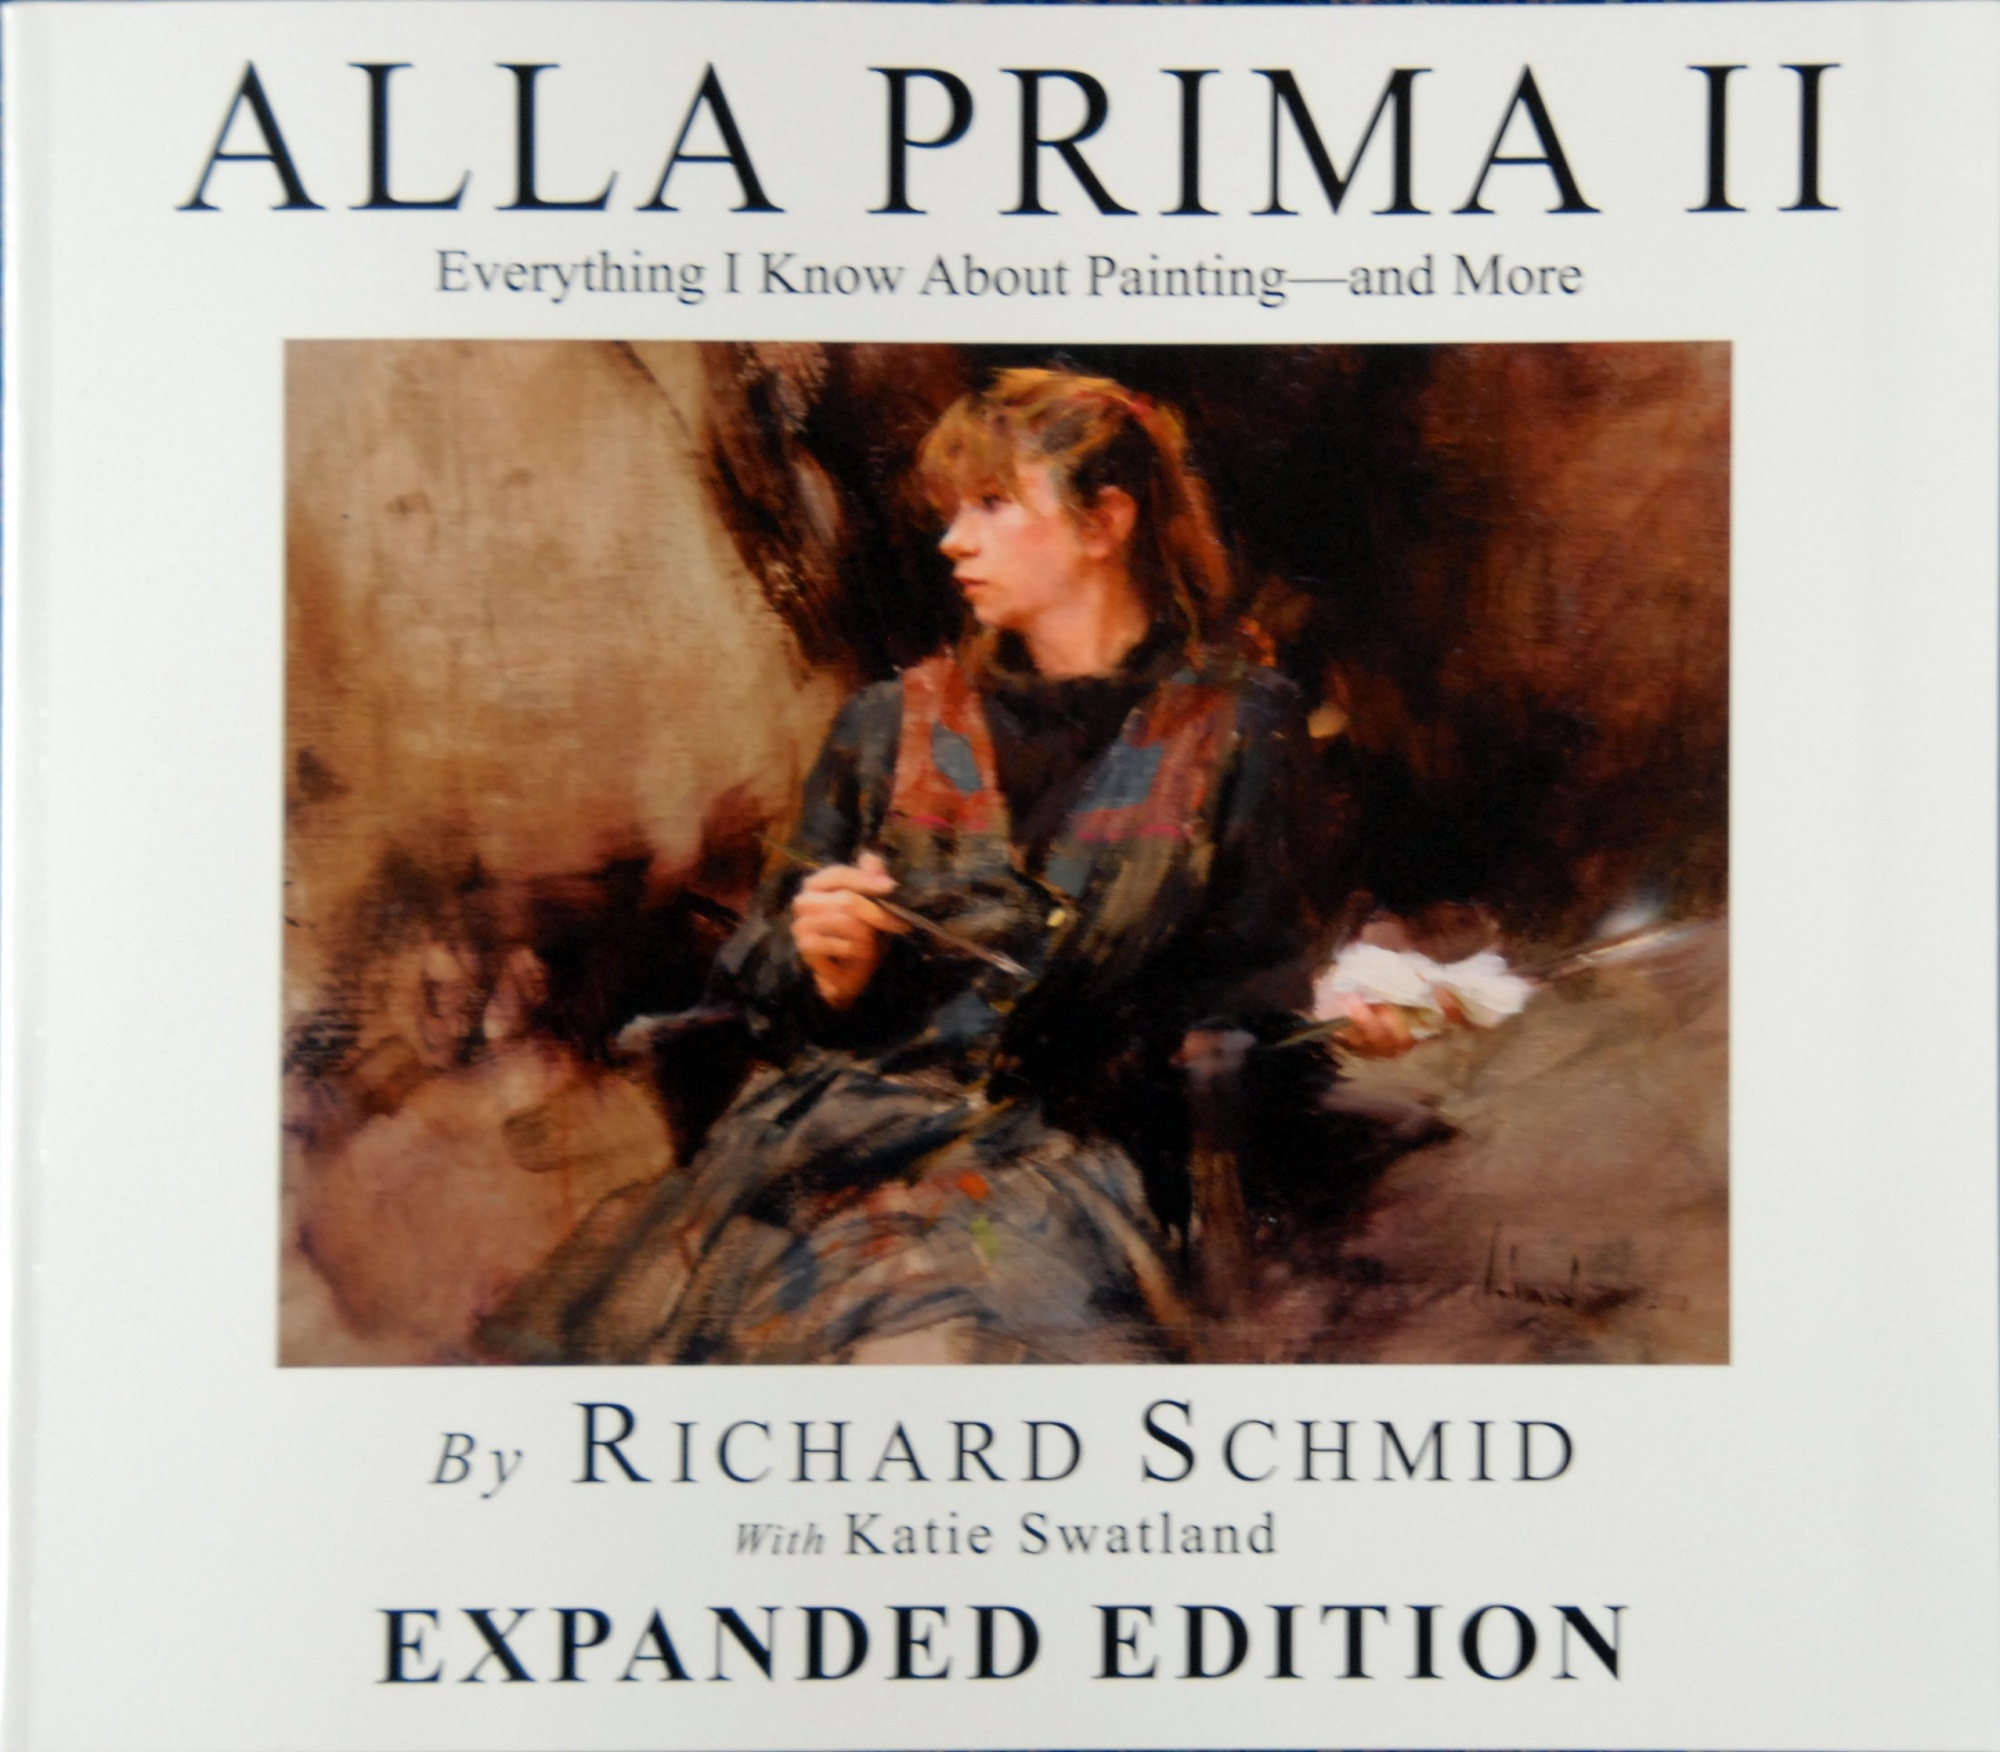 ALLA PRIMA II: Everything I Know About Painting - and More EXPANDED EDITION